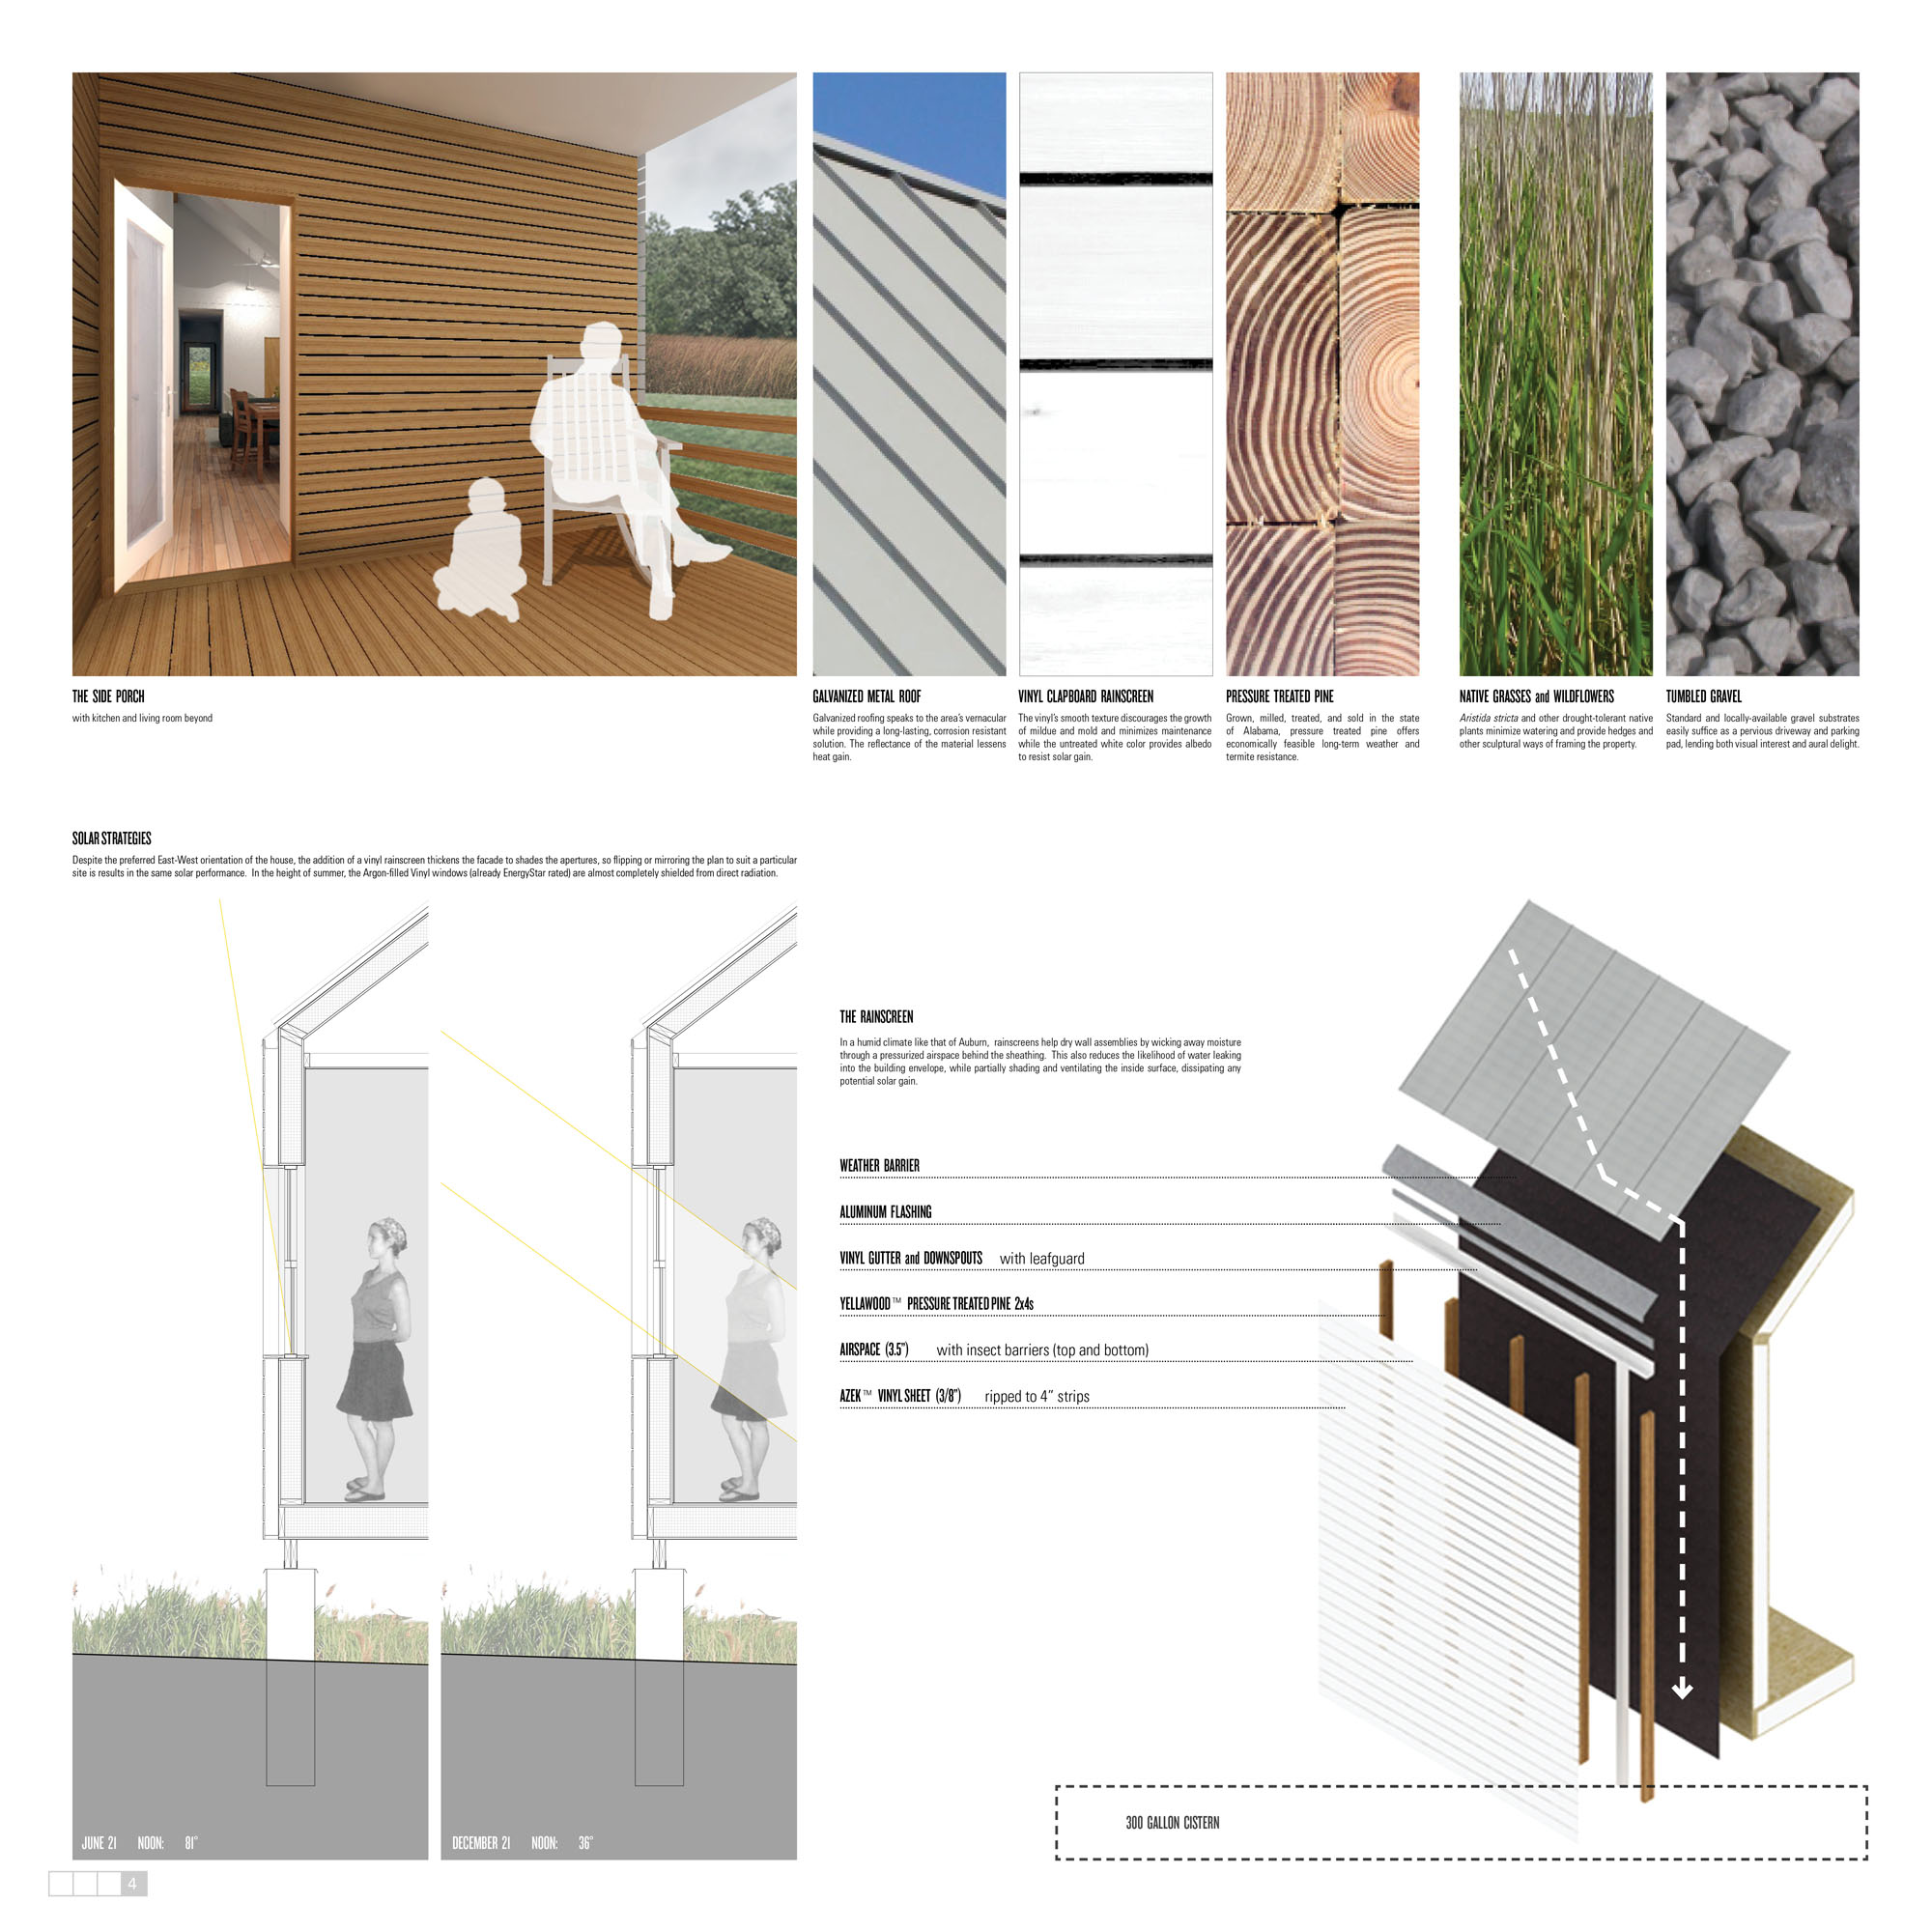 Architecture Photography Best Use Of Vinyl Habitat For Humanity S Sustainable Home Design